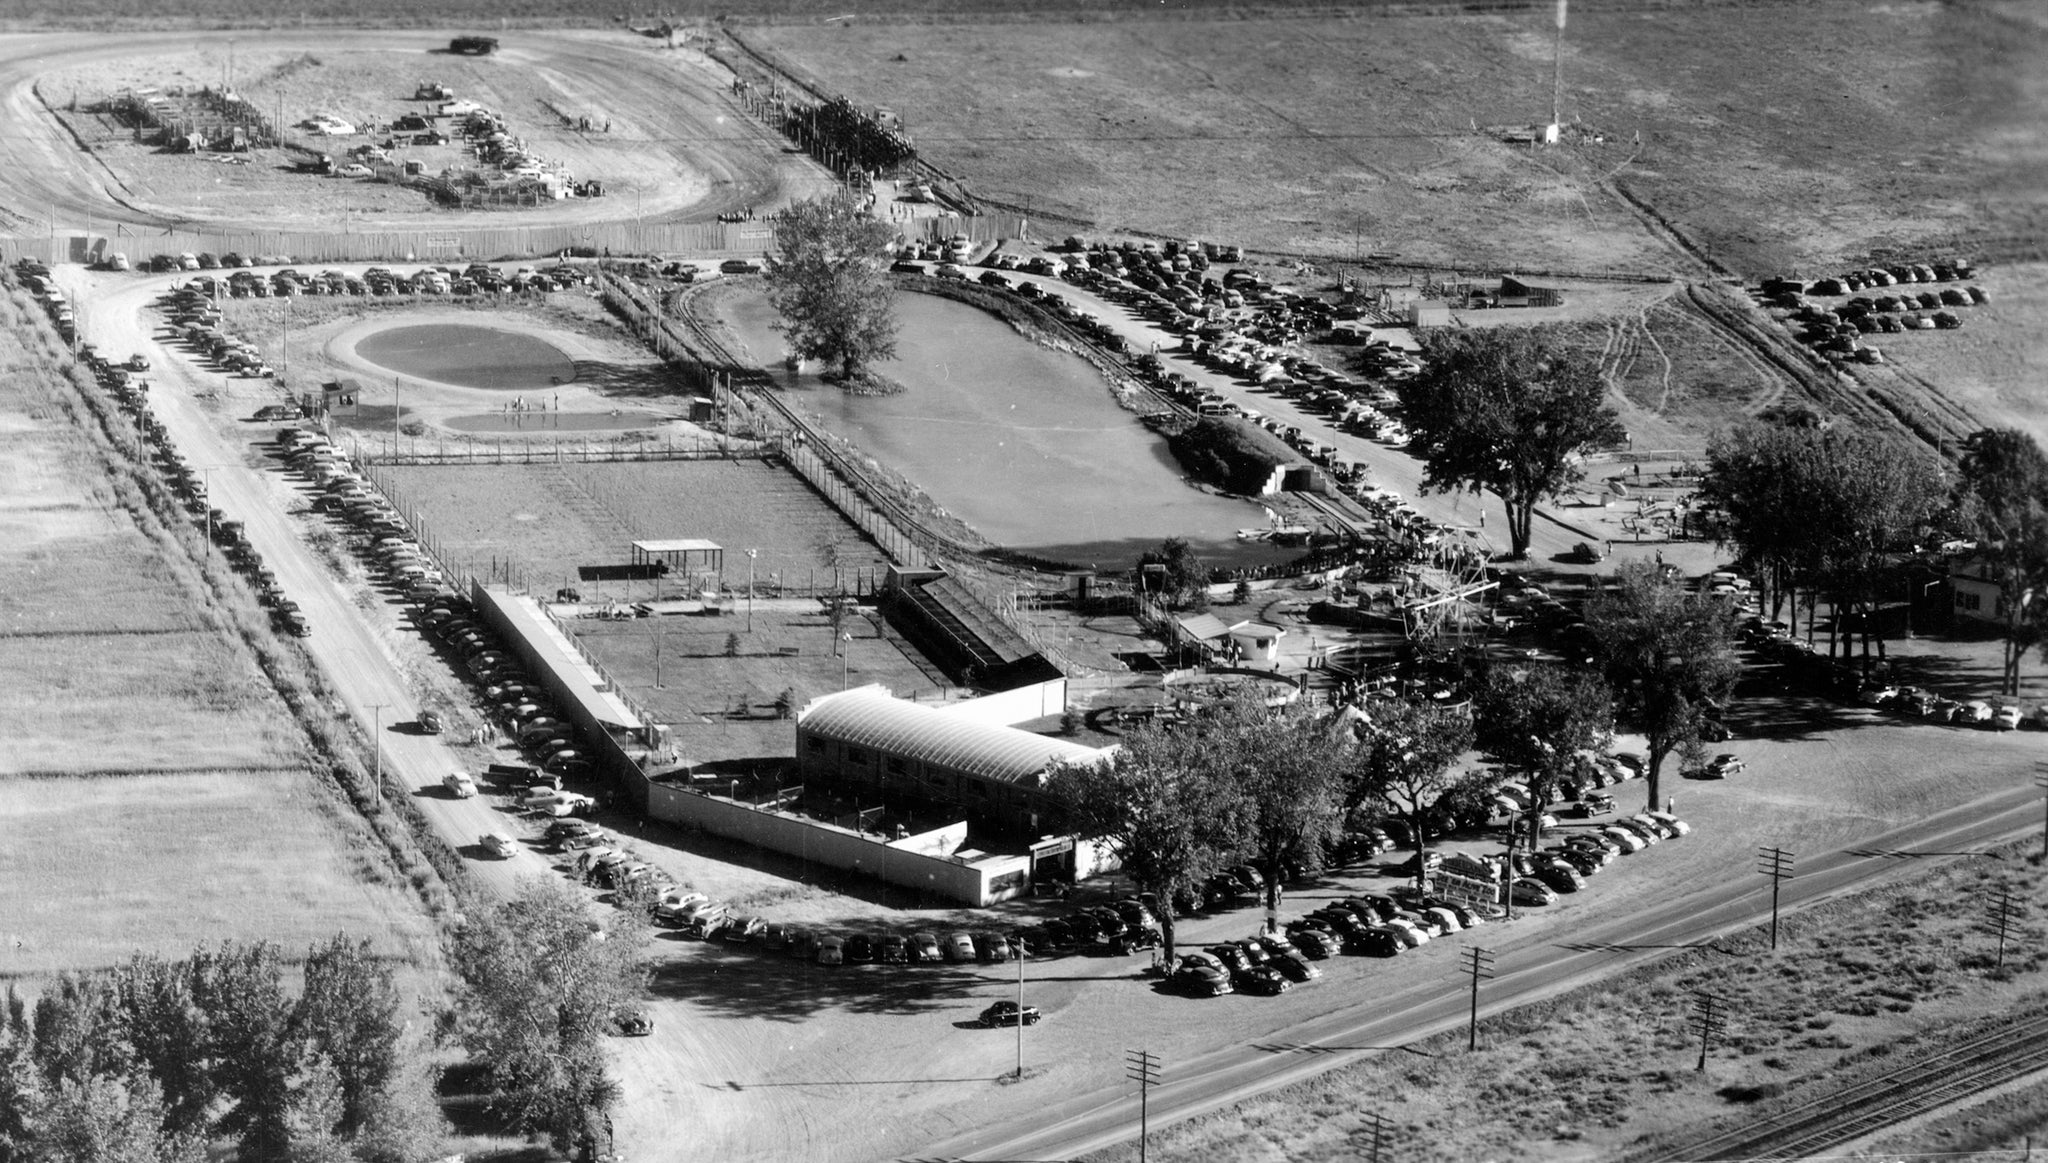 Wonderland amusement park, circa 1950s. It featured a speedway, thrill rides, pony rides, trout pond, and a train. -- Jim Reich